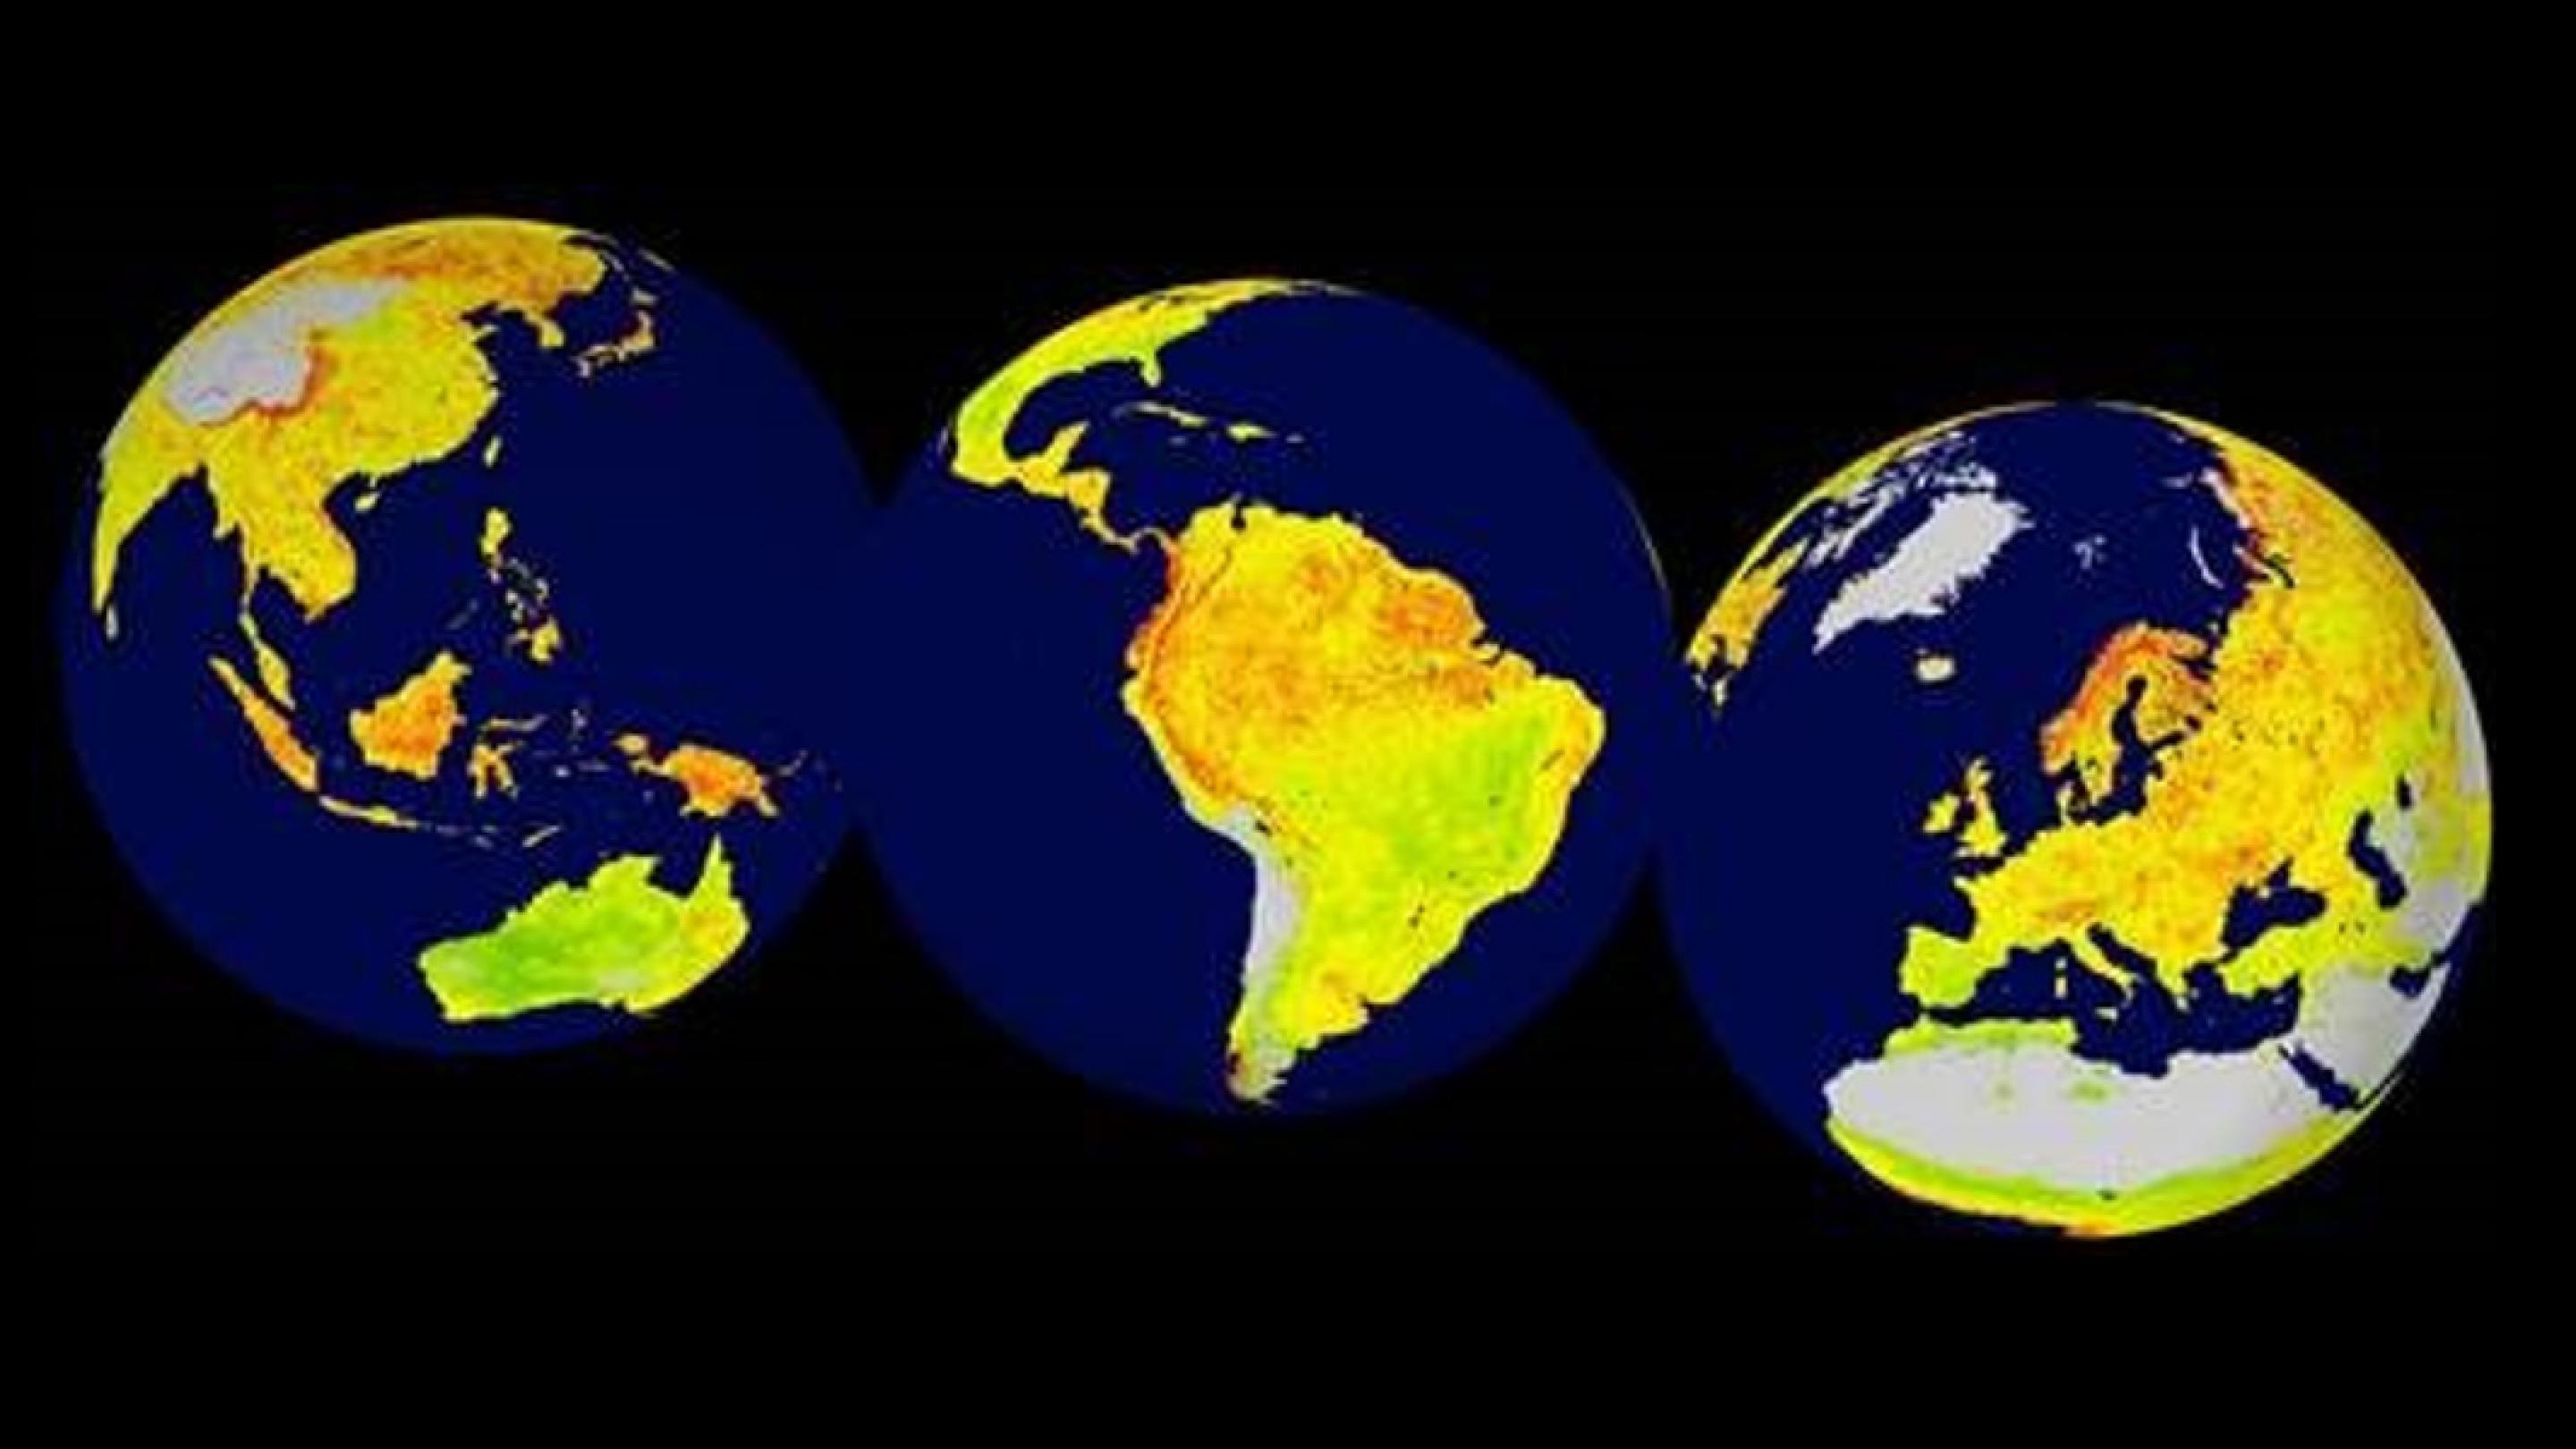 Image showing a global snapshot of the Vegetation Sensitivity Index (VSI), a new indicator of vegetation sensitivity to climate variability using satellite data between 2000-2013 at 5km resolution